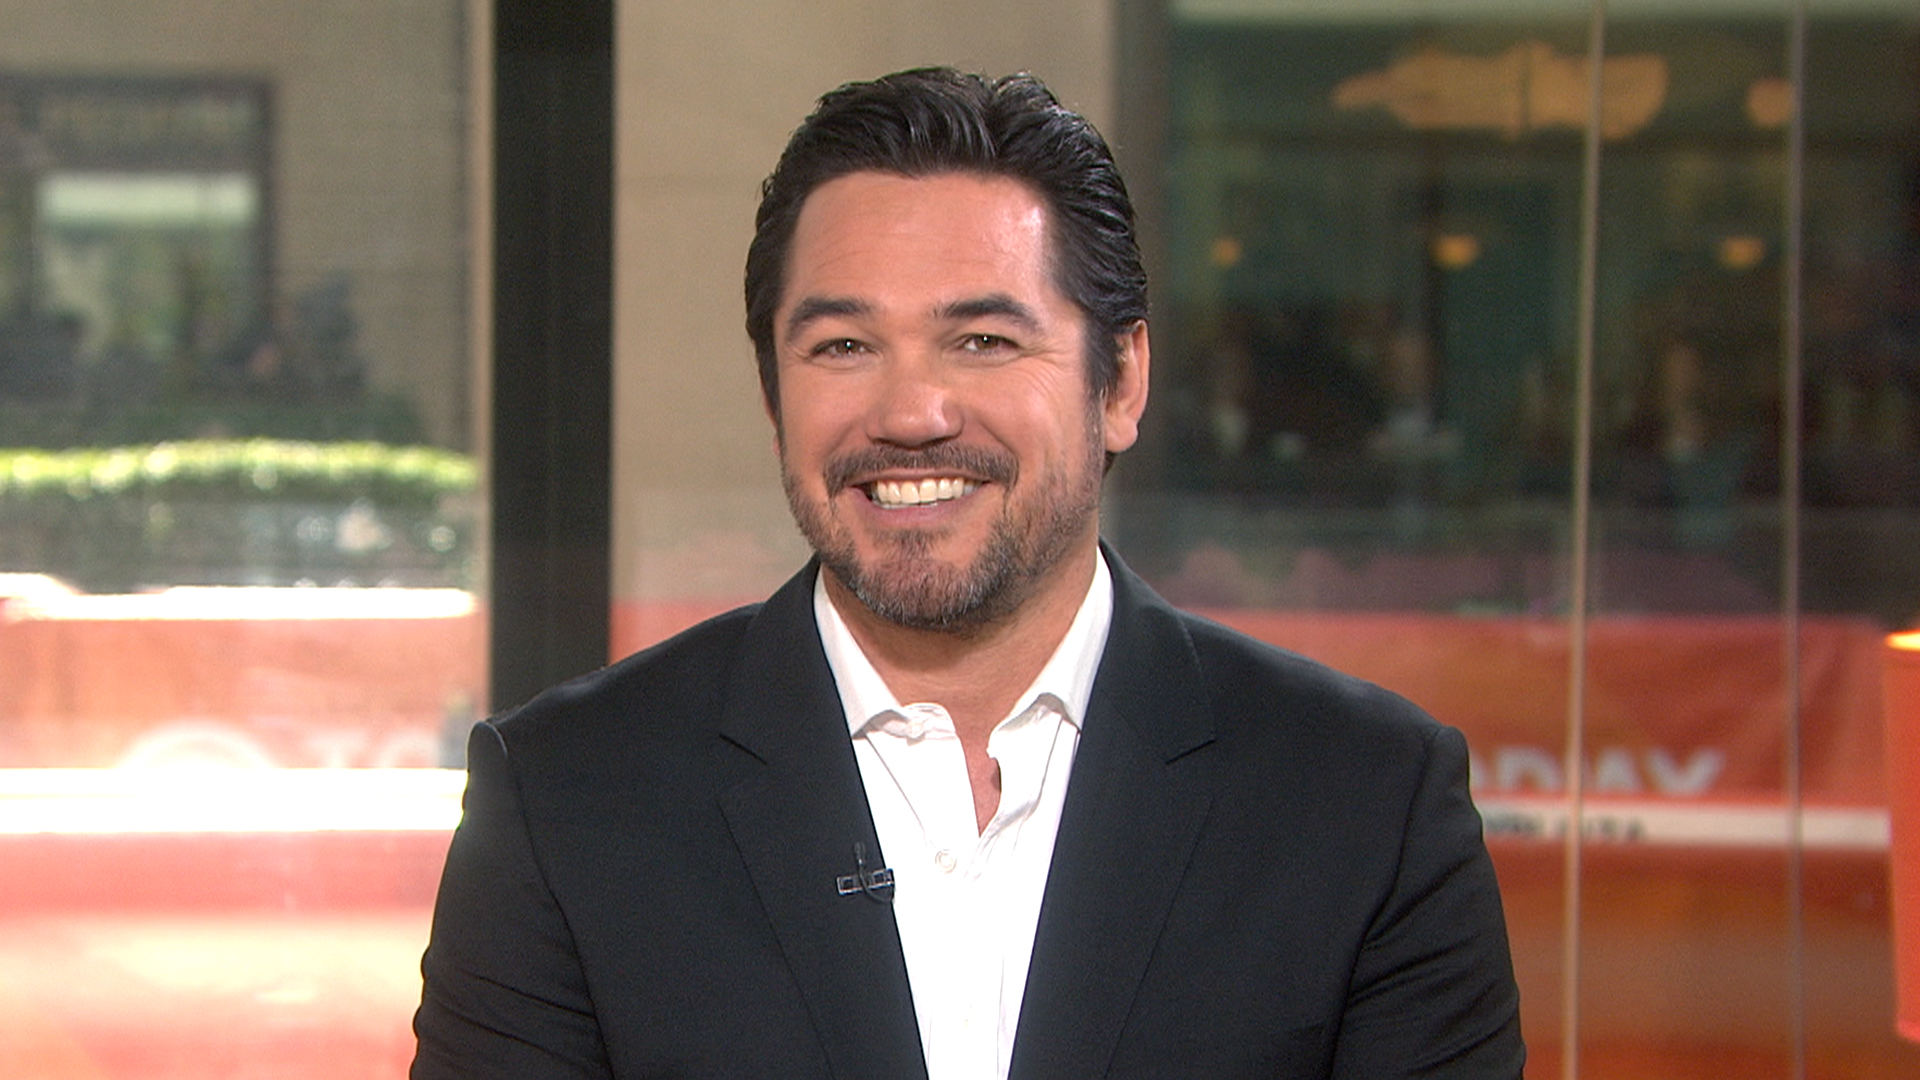 dean cain wikidean cain кинопоиск, dean cain filmography, dean cain facebook, dean cain actor, dean cain a horse for summer, dean cain height, dean cain imdb, dean cain the perfect husband, dean cain uib, dean cain armenia, dean cain jump, dean cain twitter, dean cain instagram, dean cain superman, dean cain wiki, dean cain interview, dean cain movies, dean cain young, dean cain wikipedia, dean cain workout